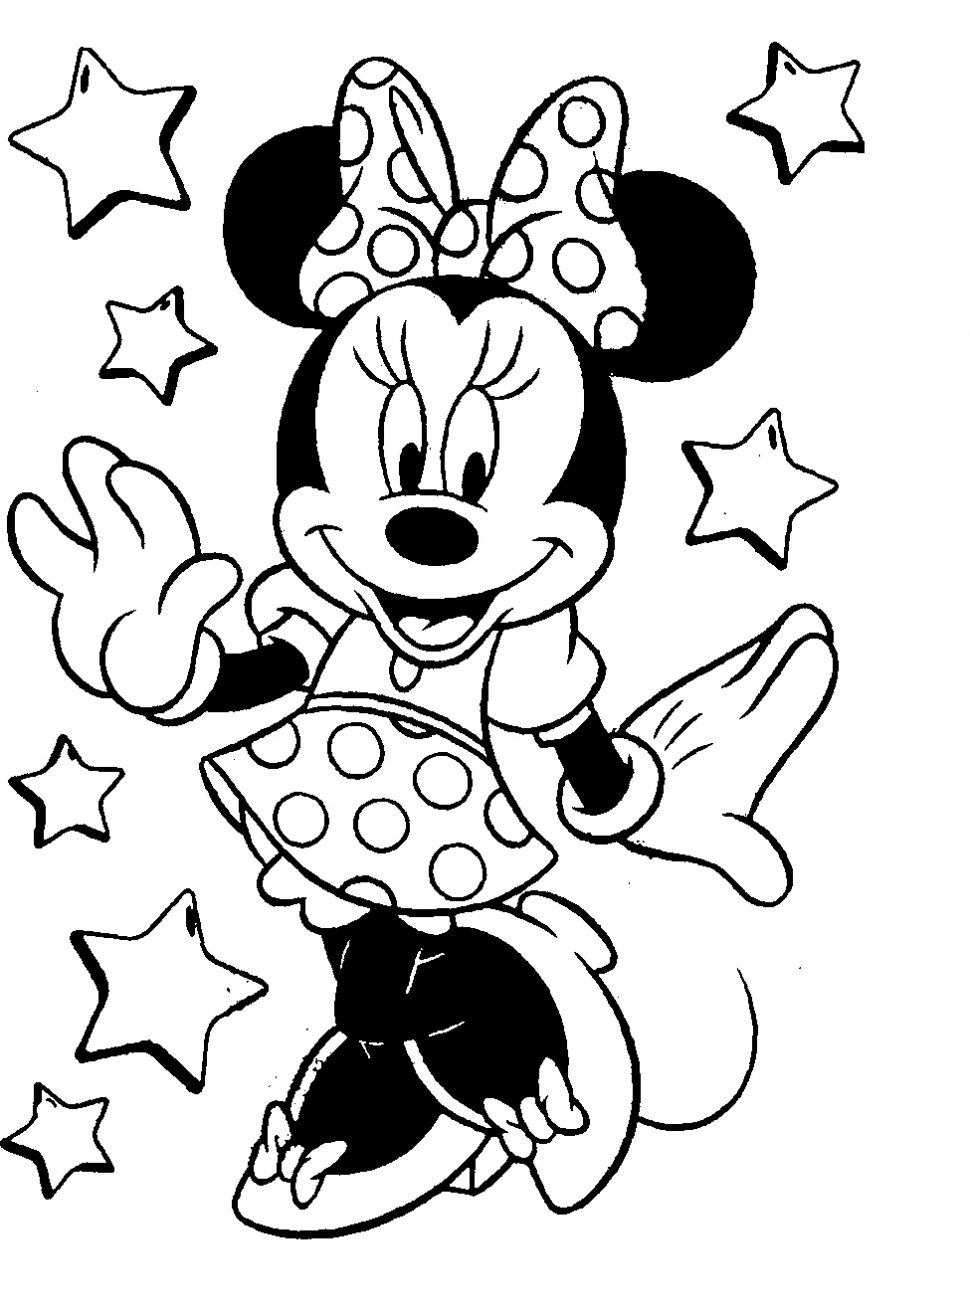 Christmas Coloring Books In Bulk With Mickey Mouse Book Opticanovosti 3bb8fc527d71